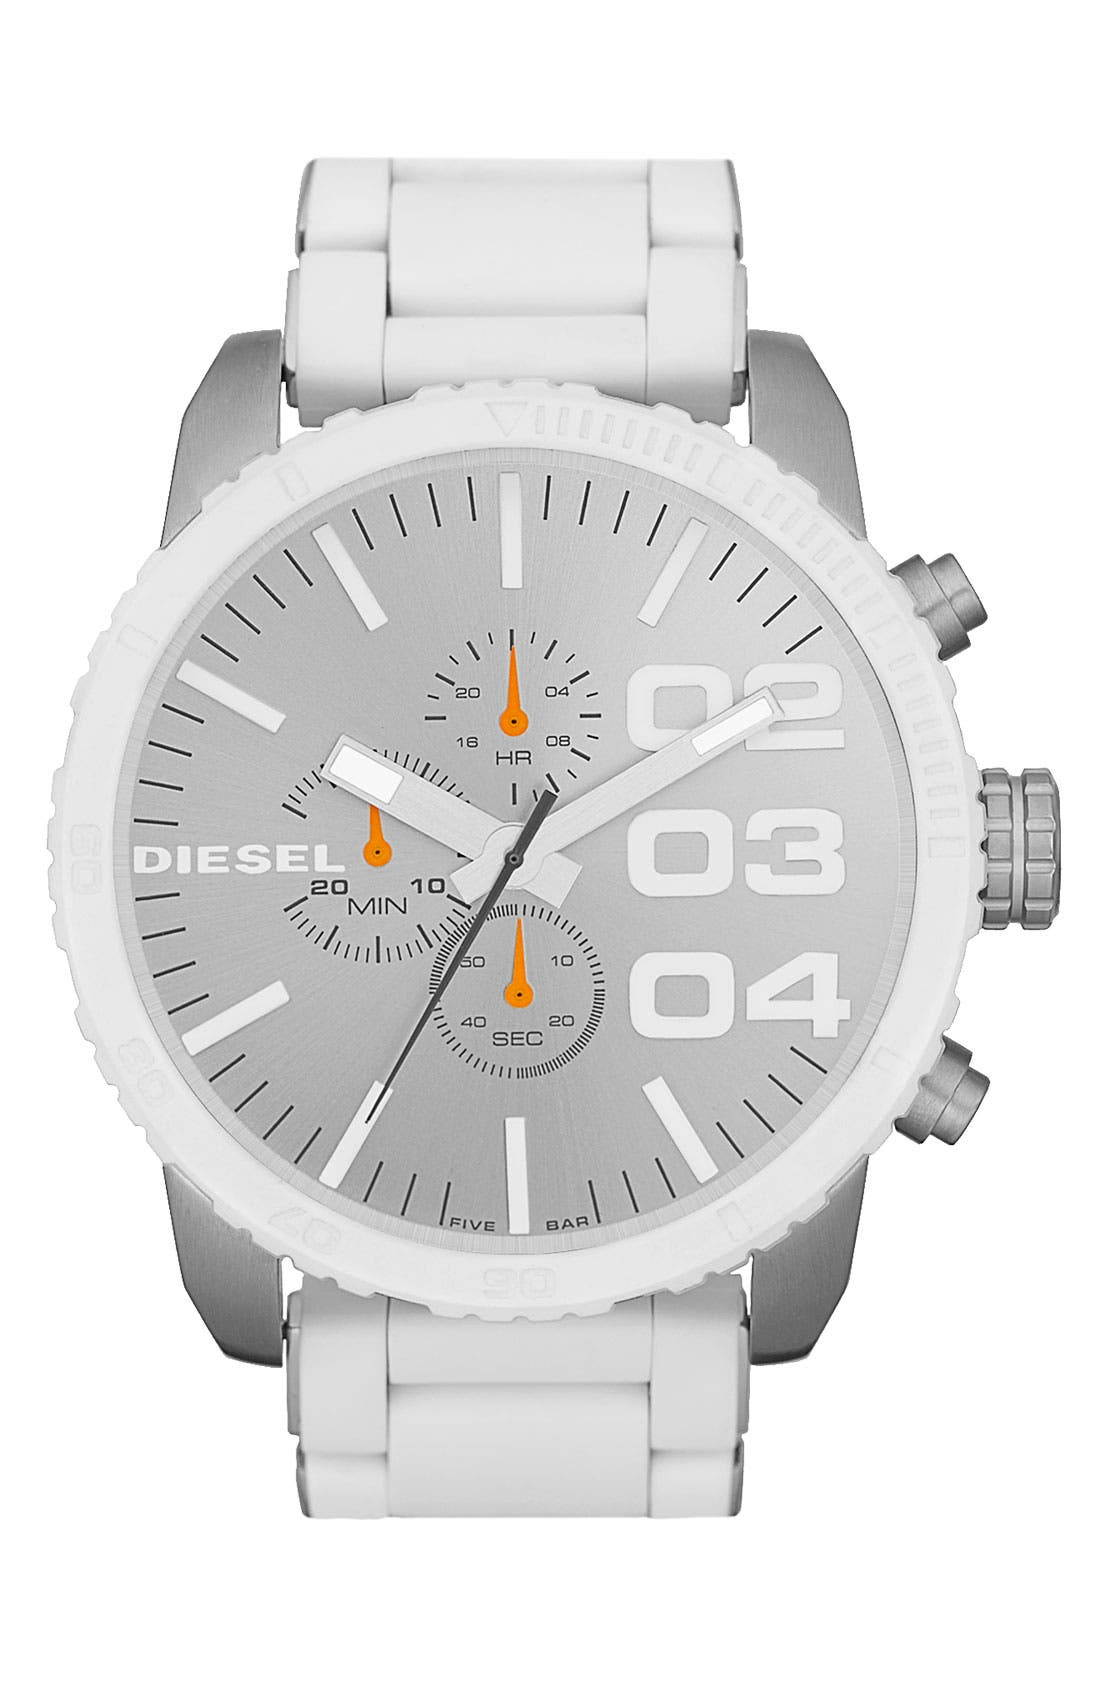 Main Image - DIESEL® 'Double Down' Large Chronograph Watch, 52mm